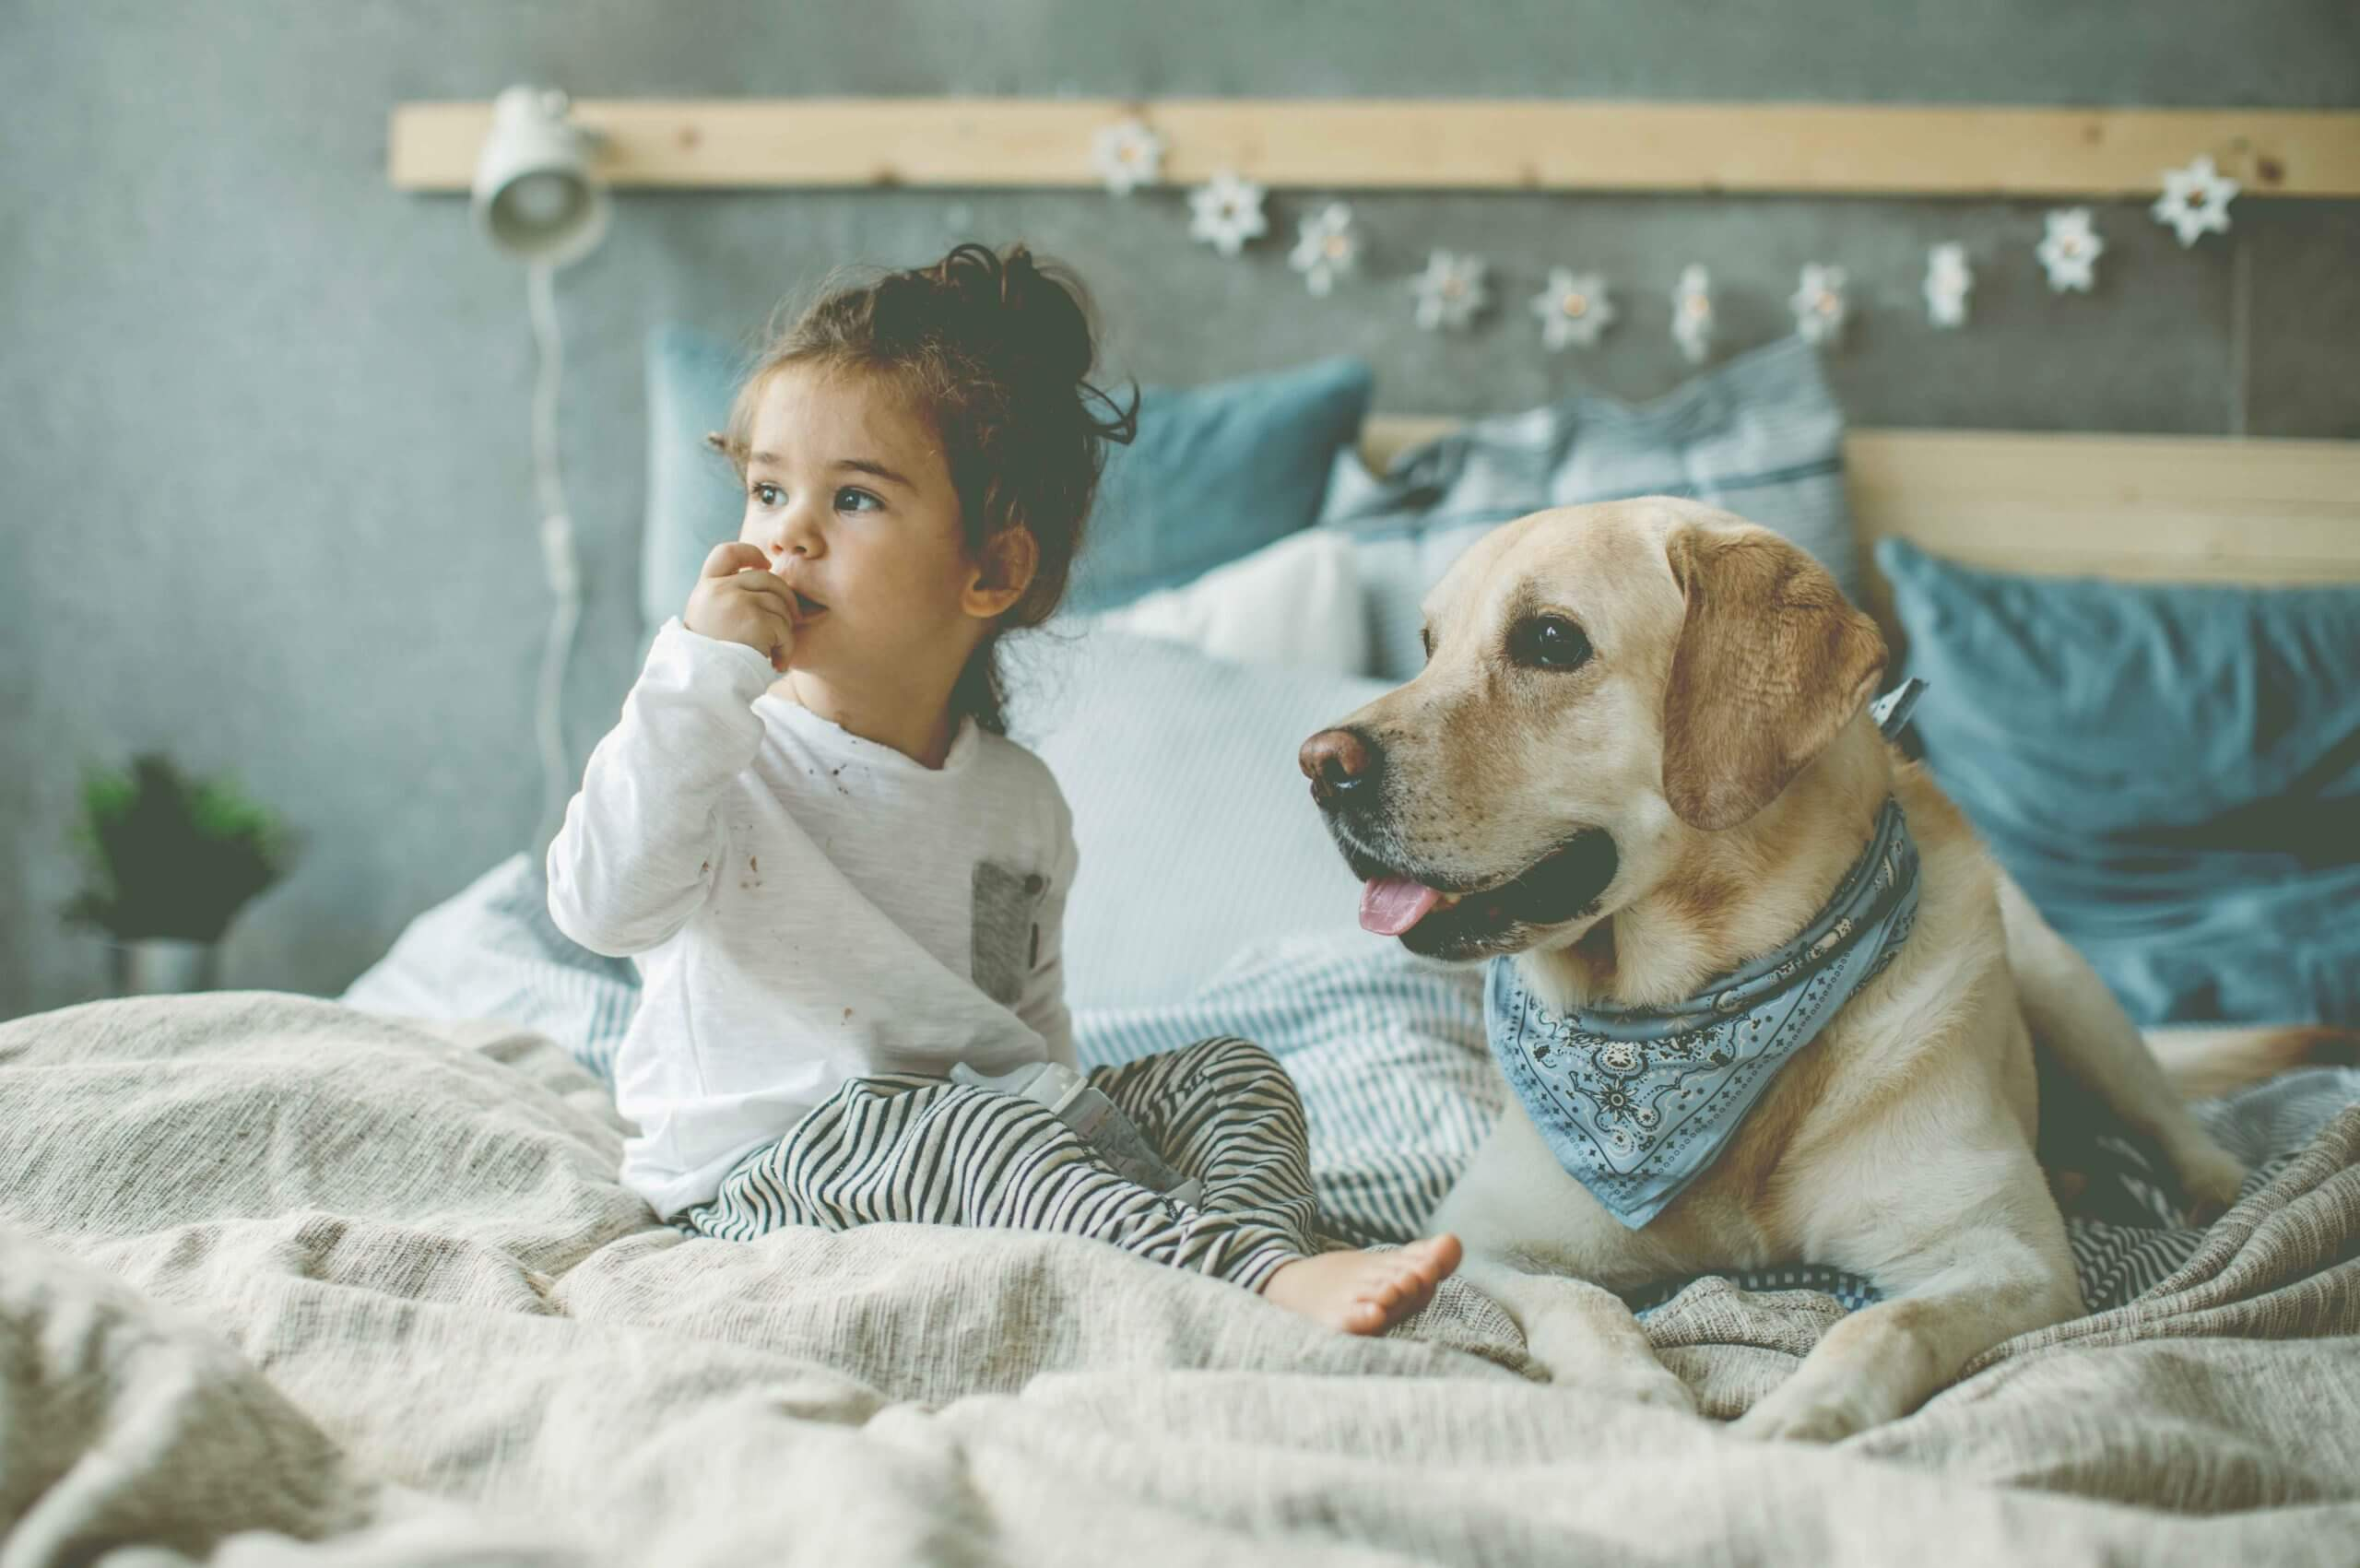 Little boy and his dog on bed, it is sunday morning and they just wake up.